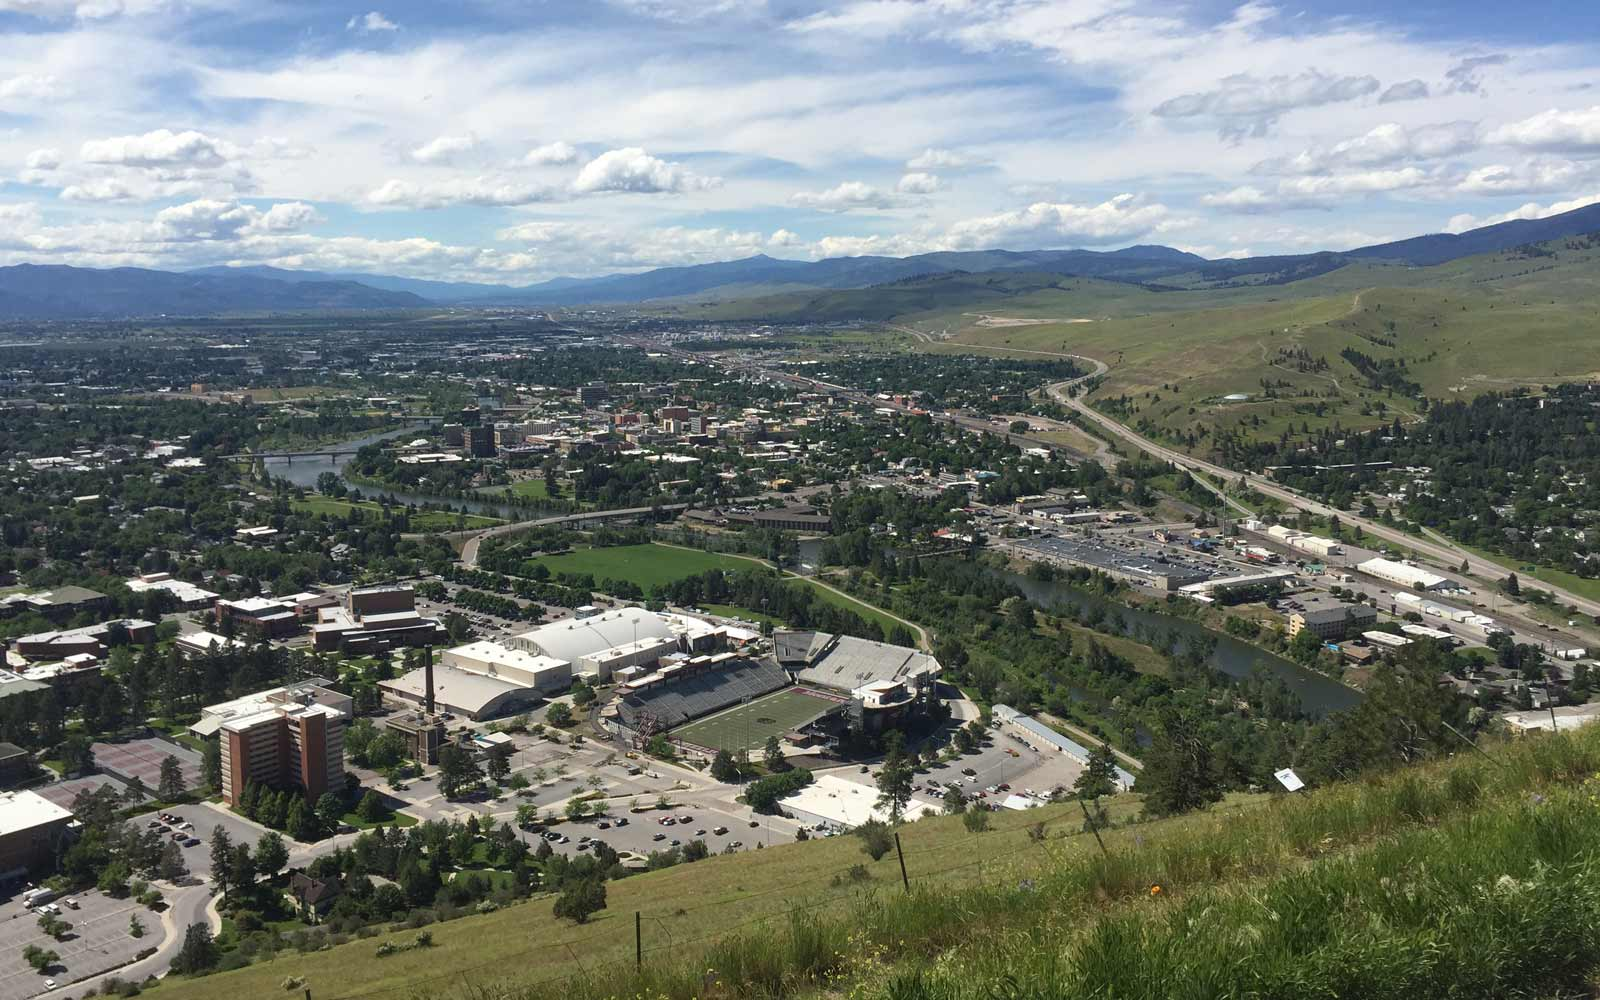 Missoula in Montana, USA